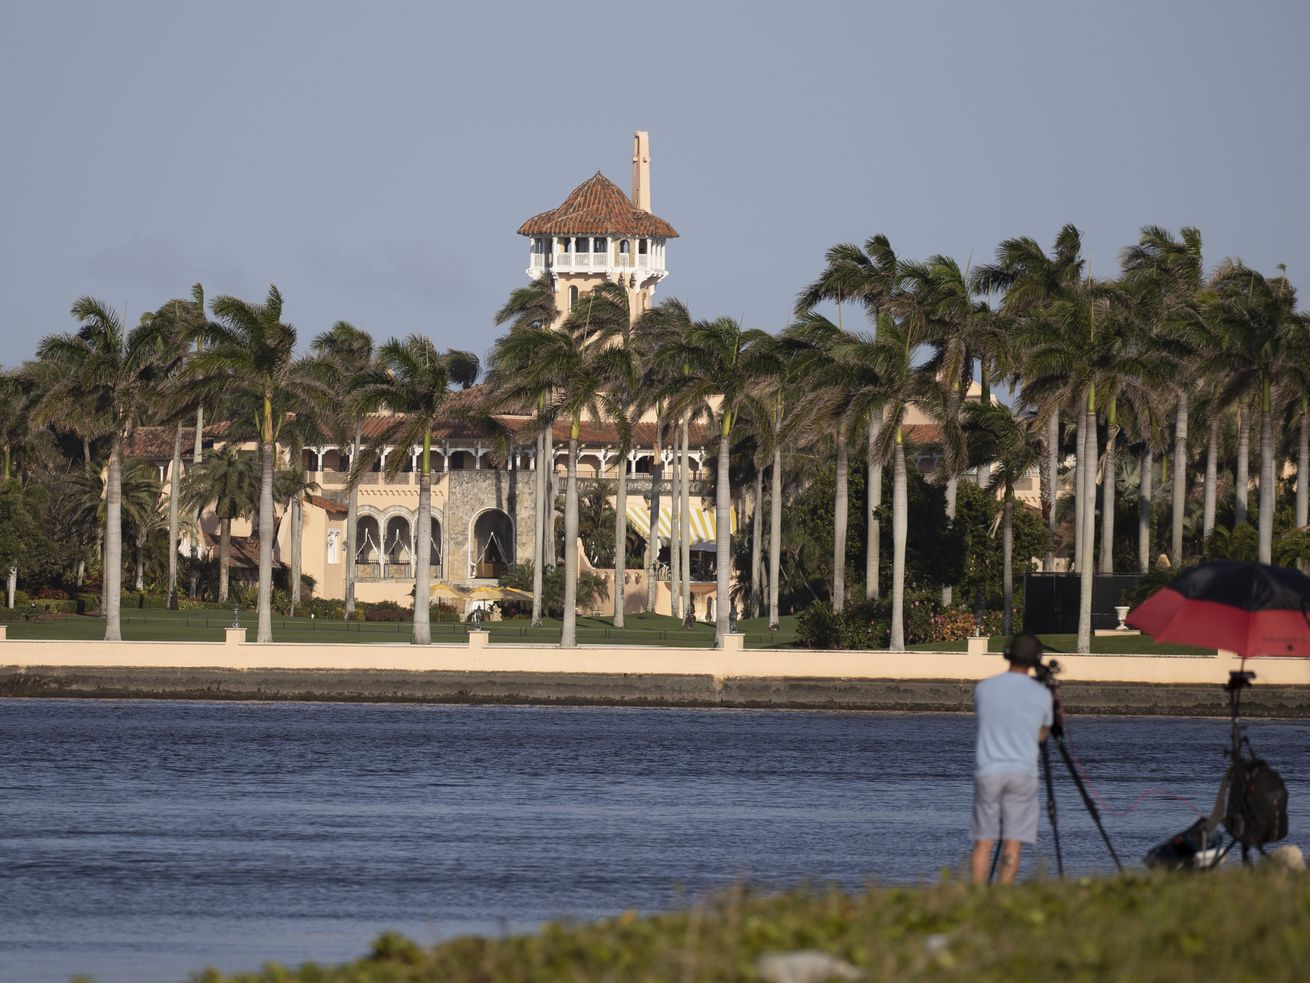 Mar-a-Lago resort in Palm Beach, Florida, as seen from across the Intracoastal Waterway. A man stands in the foreground with a camera on a tripod.